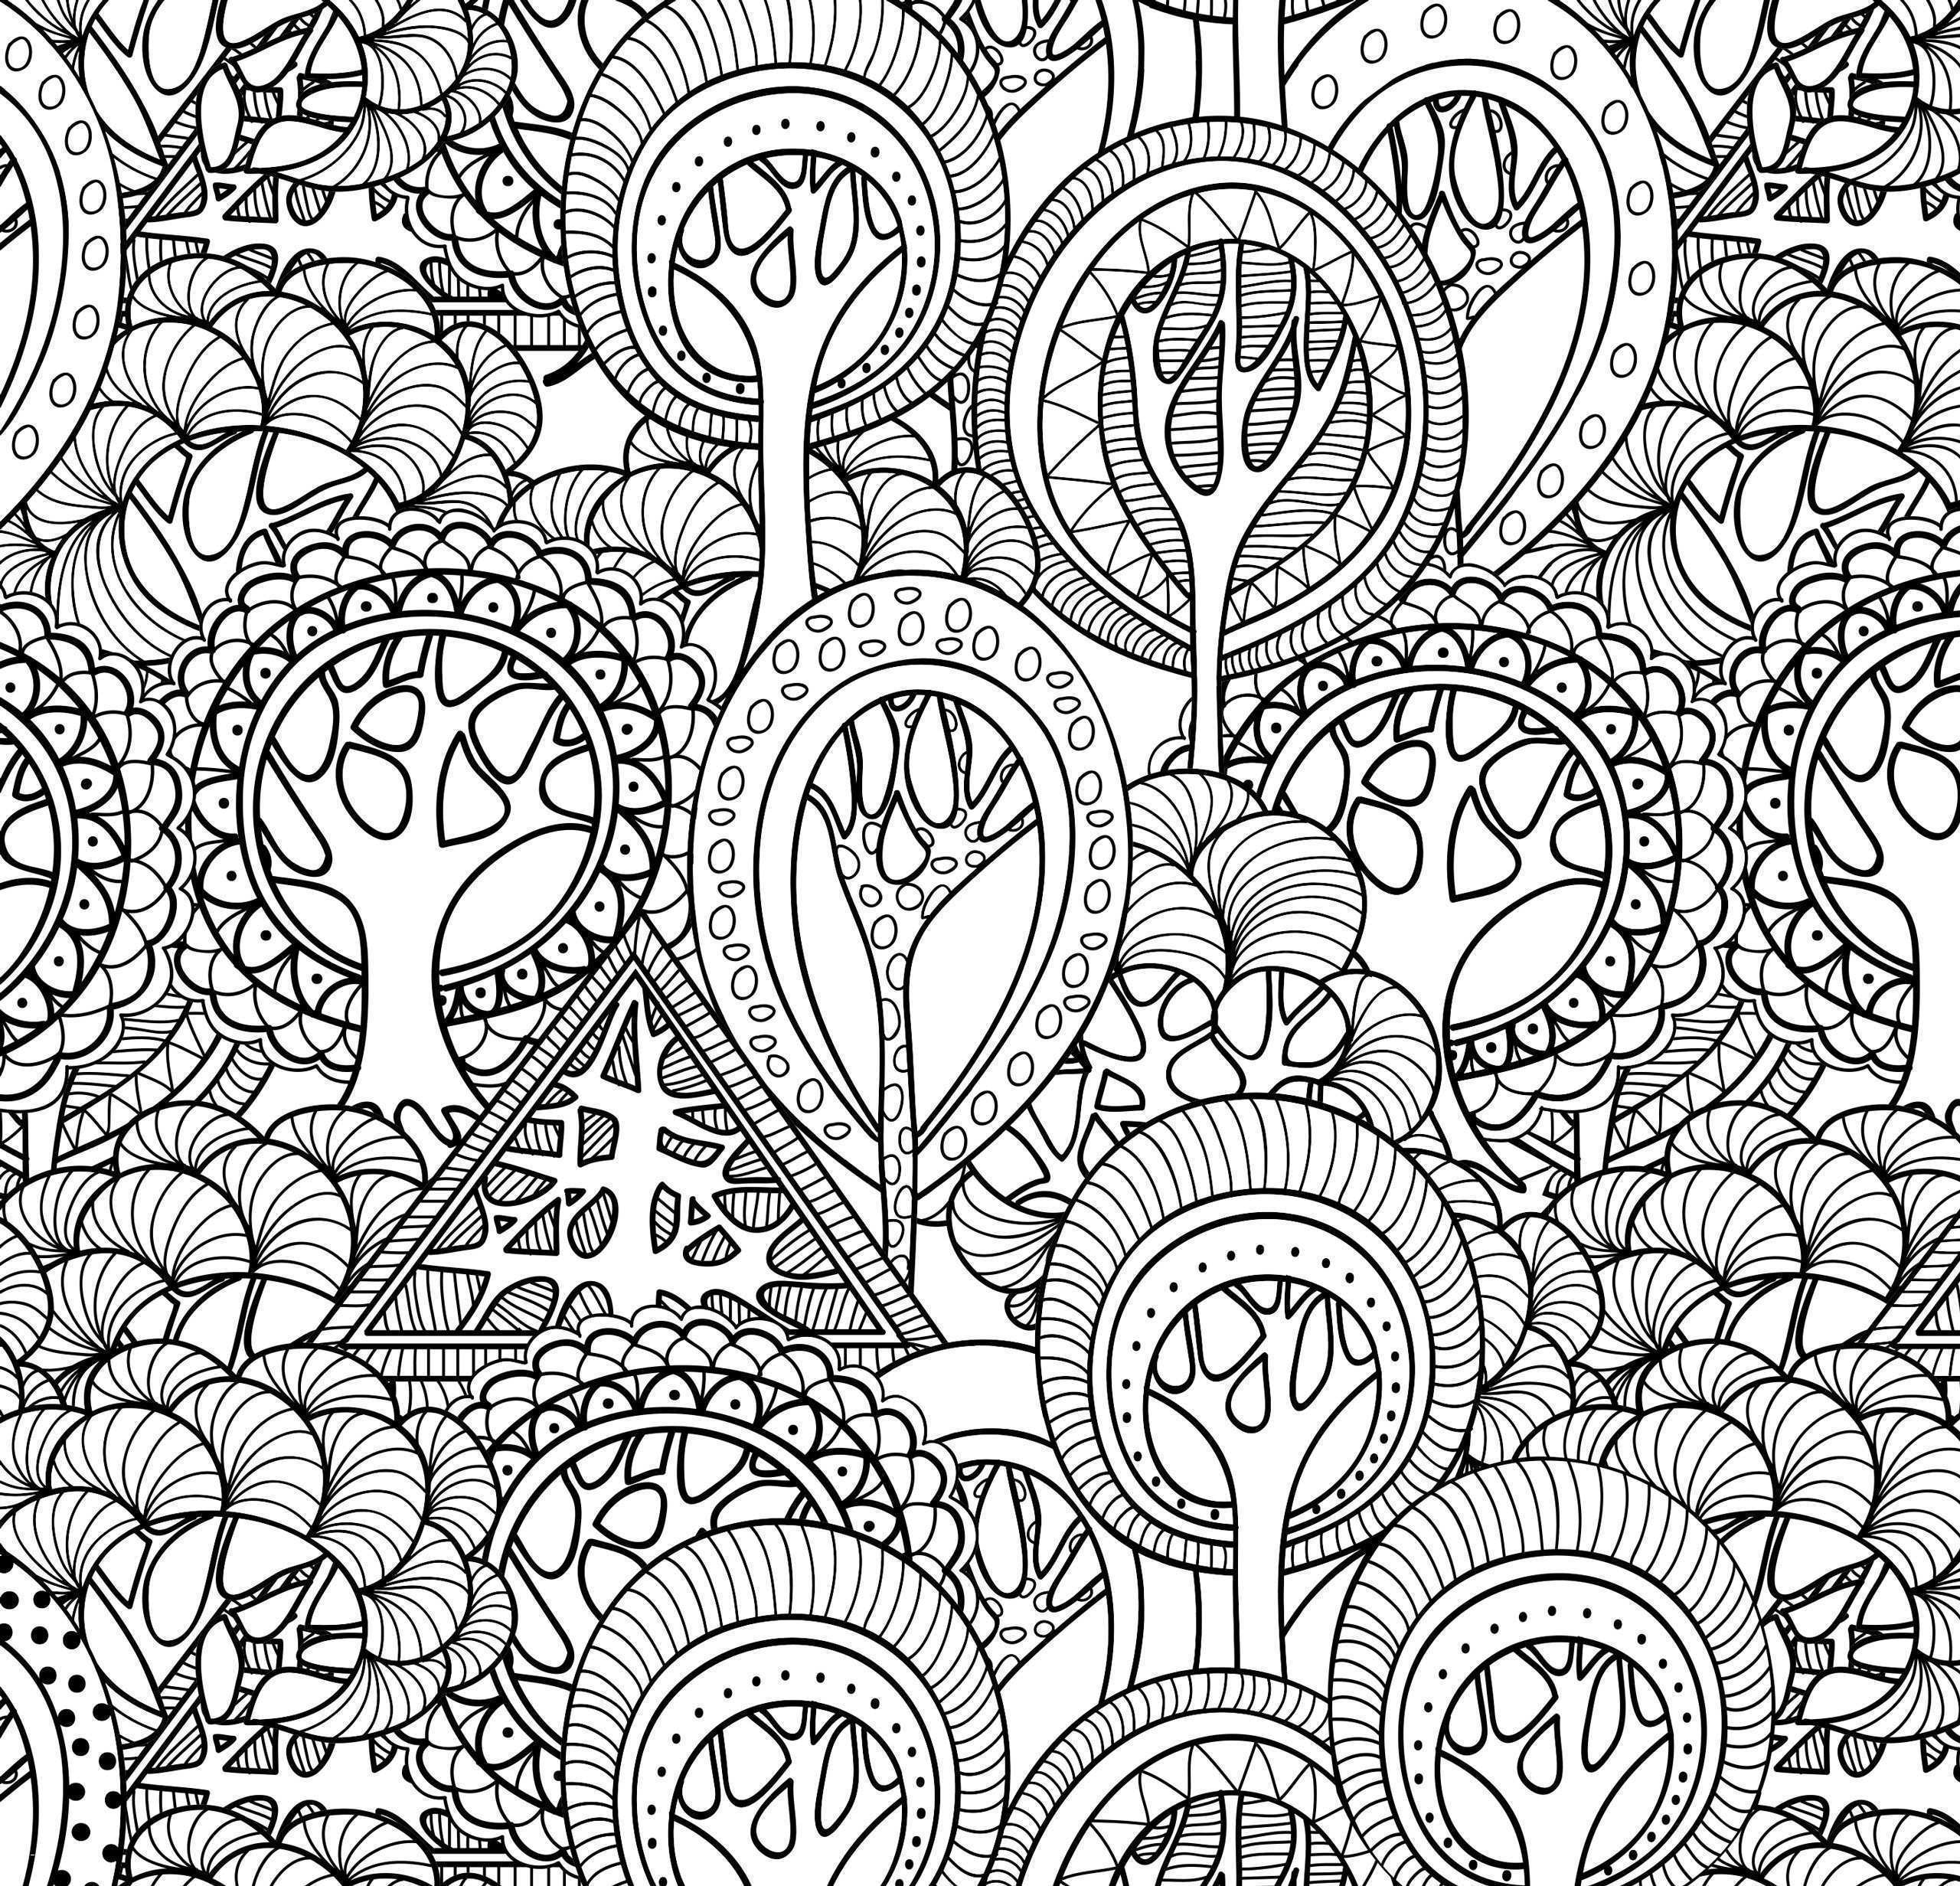 Print Coloring Picture Elegant Print Coloring Pages Luxury S S Media